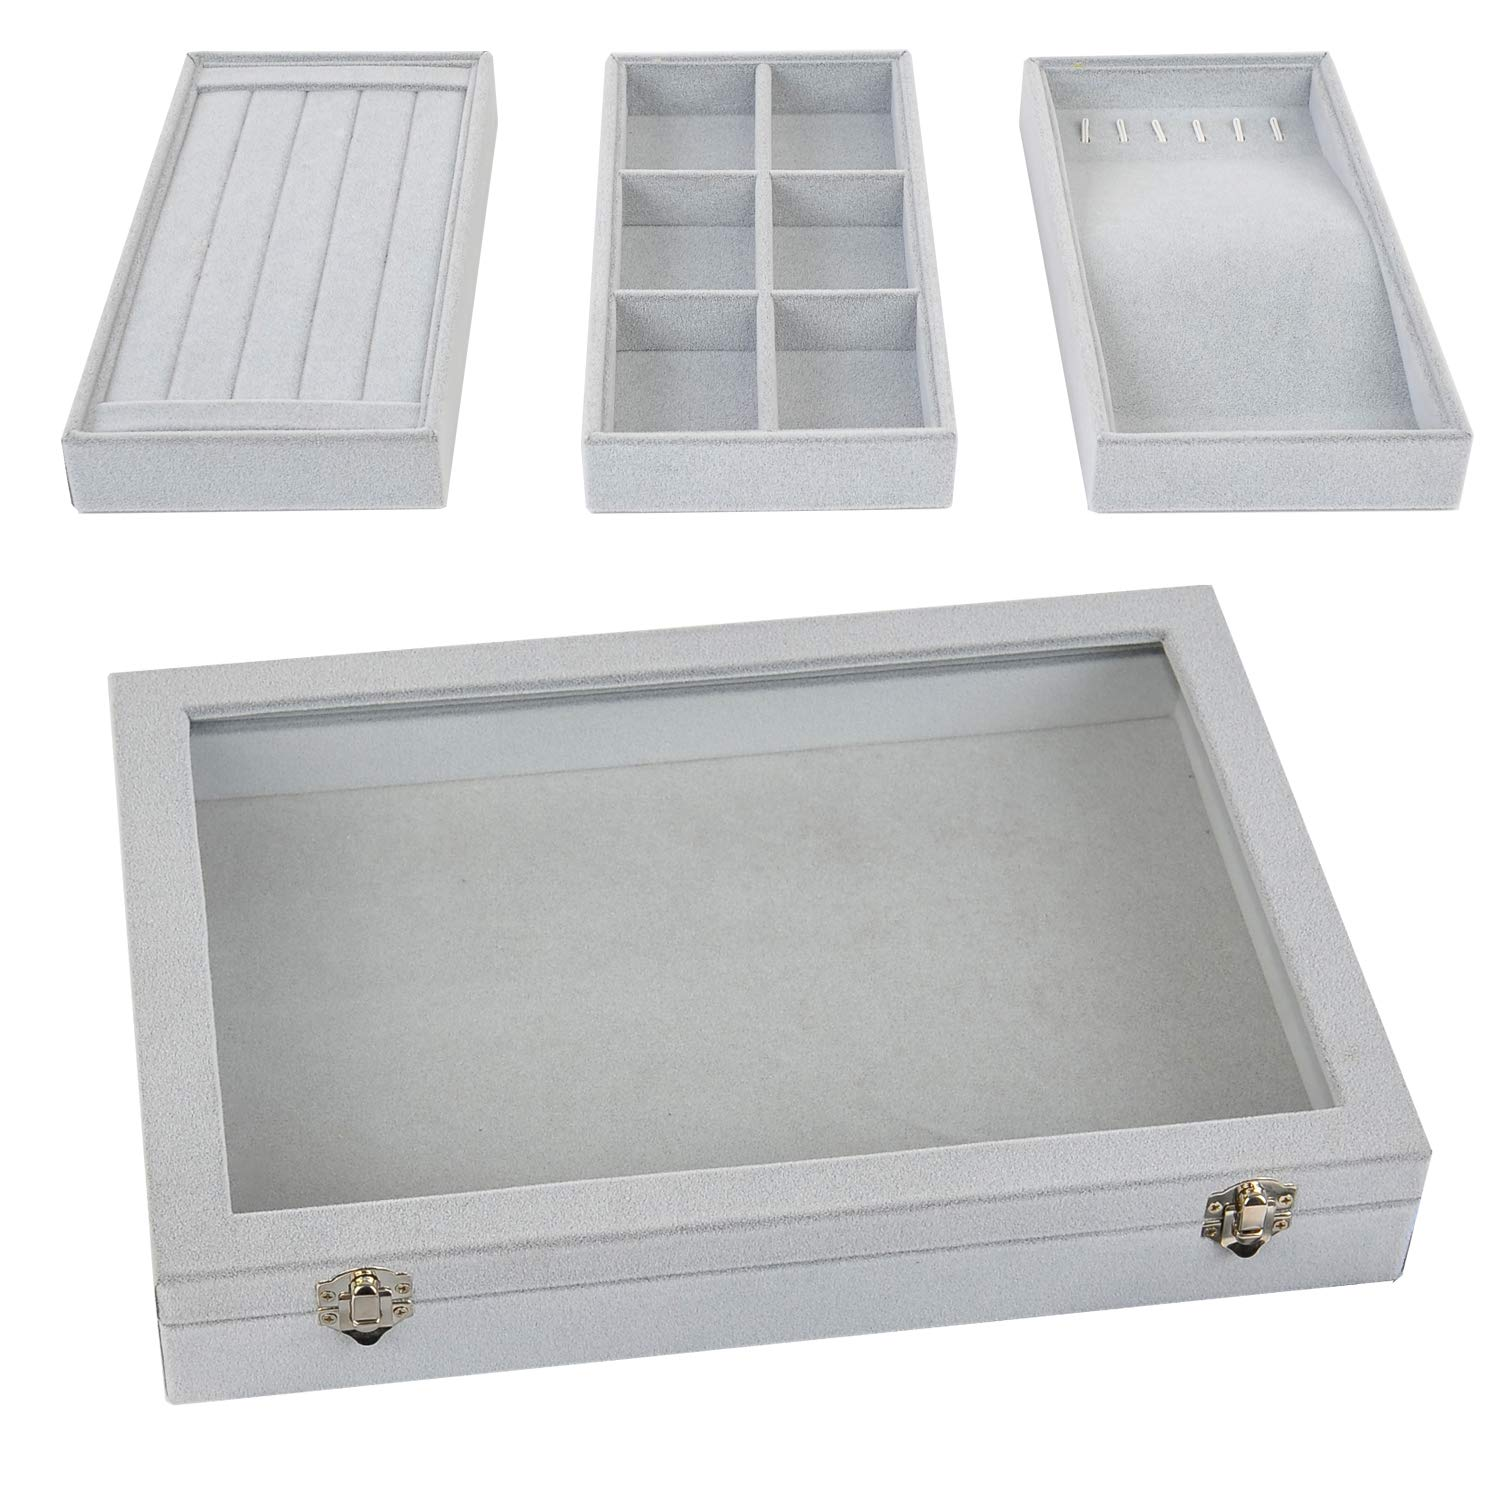 Stackable Jewelry Tray with Lid, Earring Drawer Insert Display Show Case, Dresser Organizer for Ring Stud, Necklace Holder Storage Box Chest